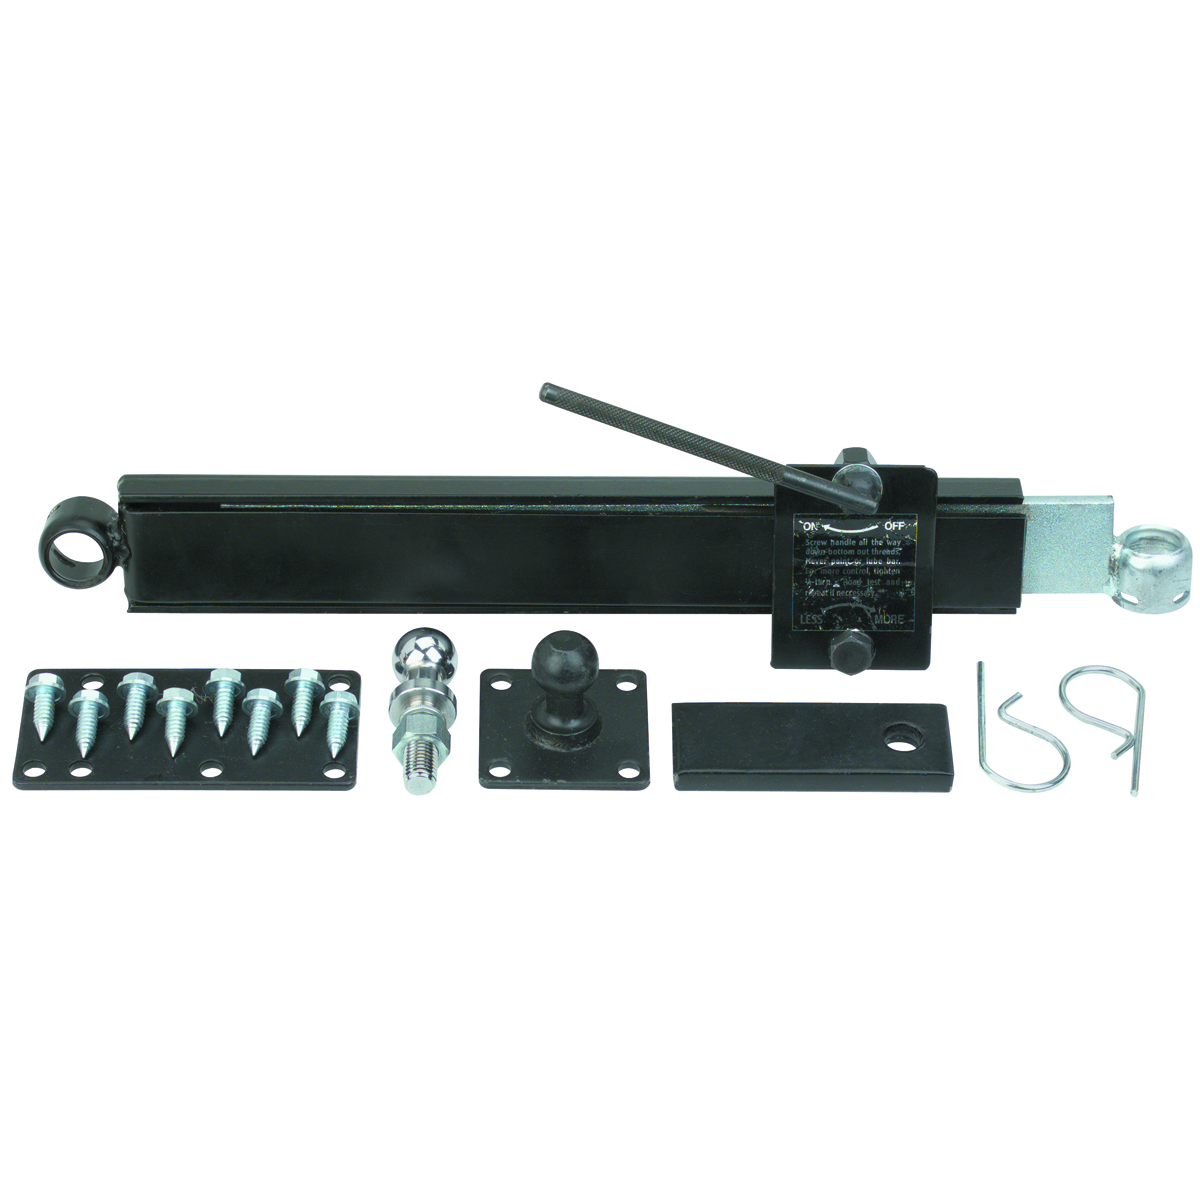 Stabilizer Bars For Travel Trailers : Trailer sway control kit